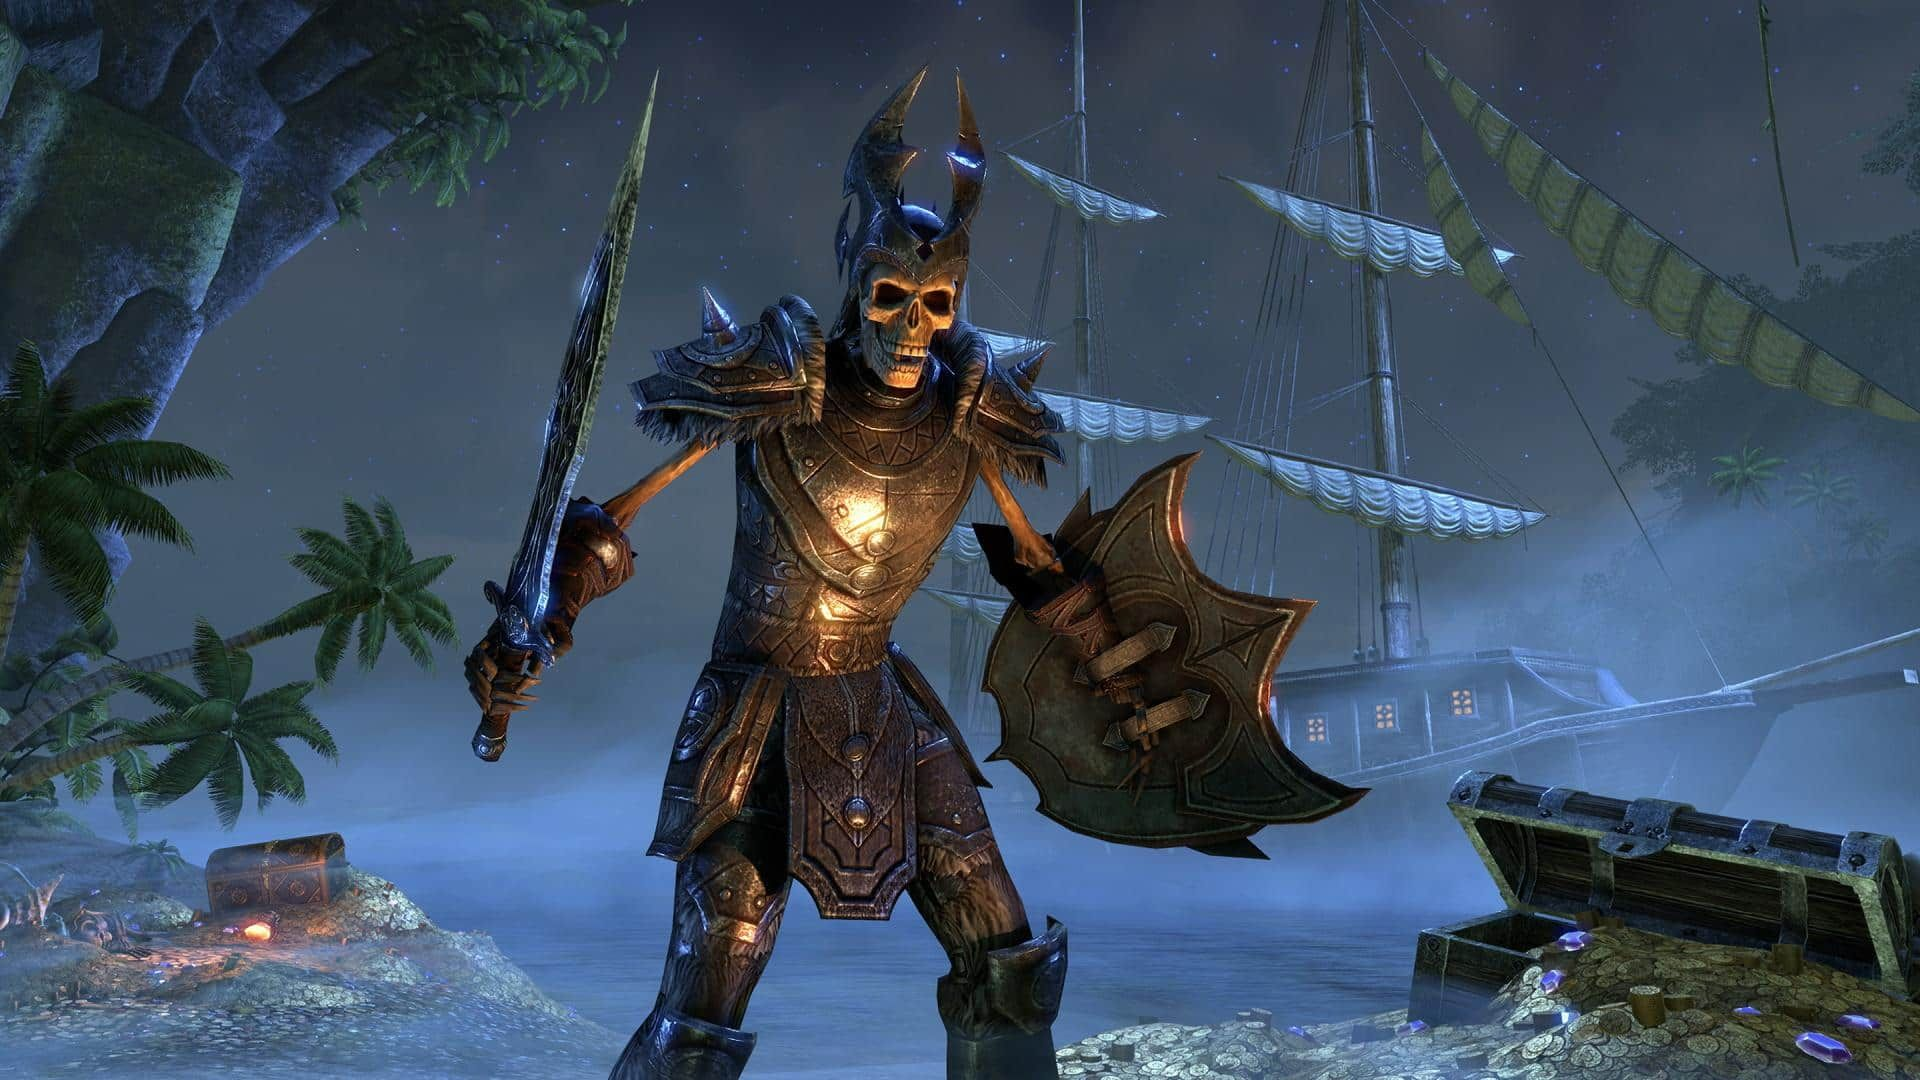 Pirate Skeleton Arms Pack Crown Store Showcase October 2019 The Elder Scrolls Online Elder Scrolls Legendary Dragons Ancient Dragon Expands scripting capabilities and adds essential additional functionality to the game. pirate skeleton arms pack crown store